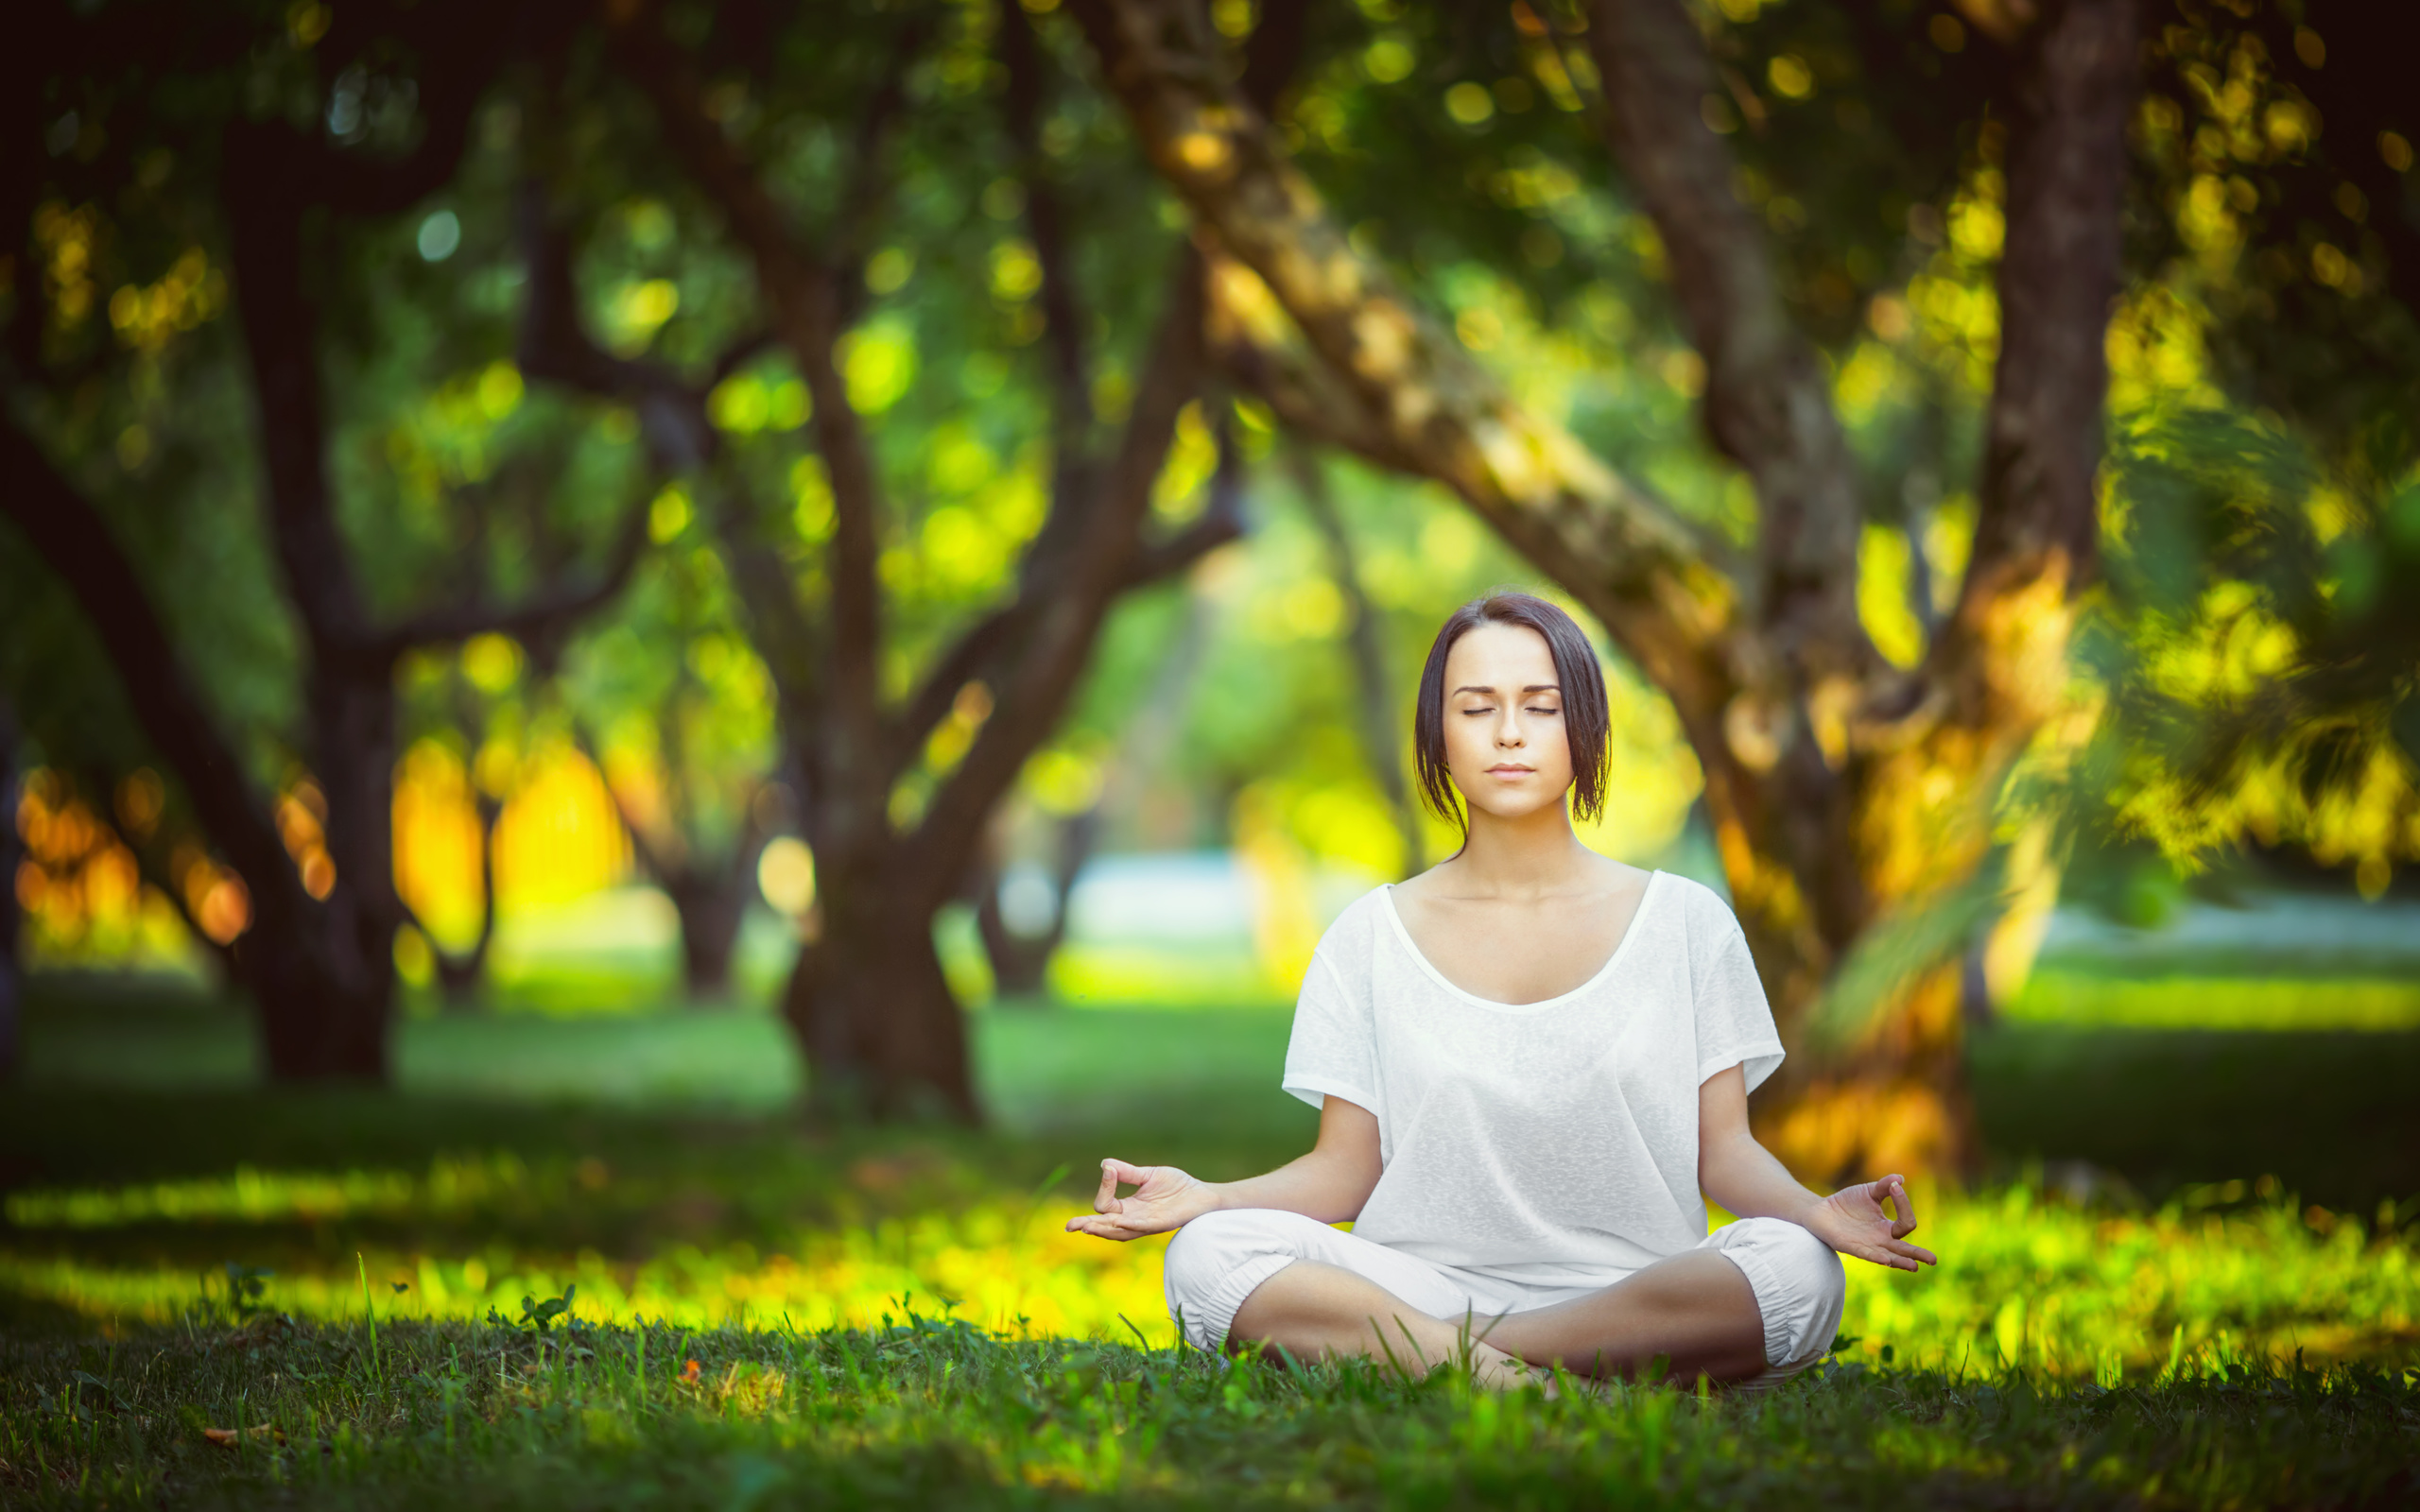 Yoga Posture Of Girl 4K Wallpaper - HD Wallpapers Backgrounds of Your ...